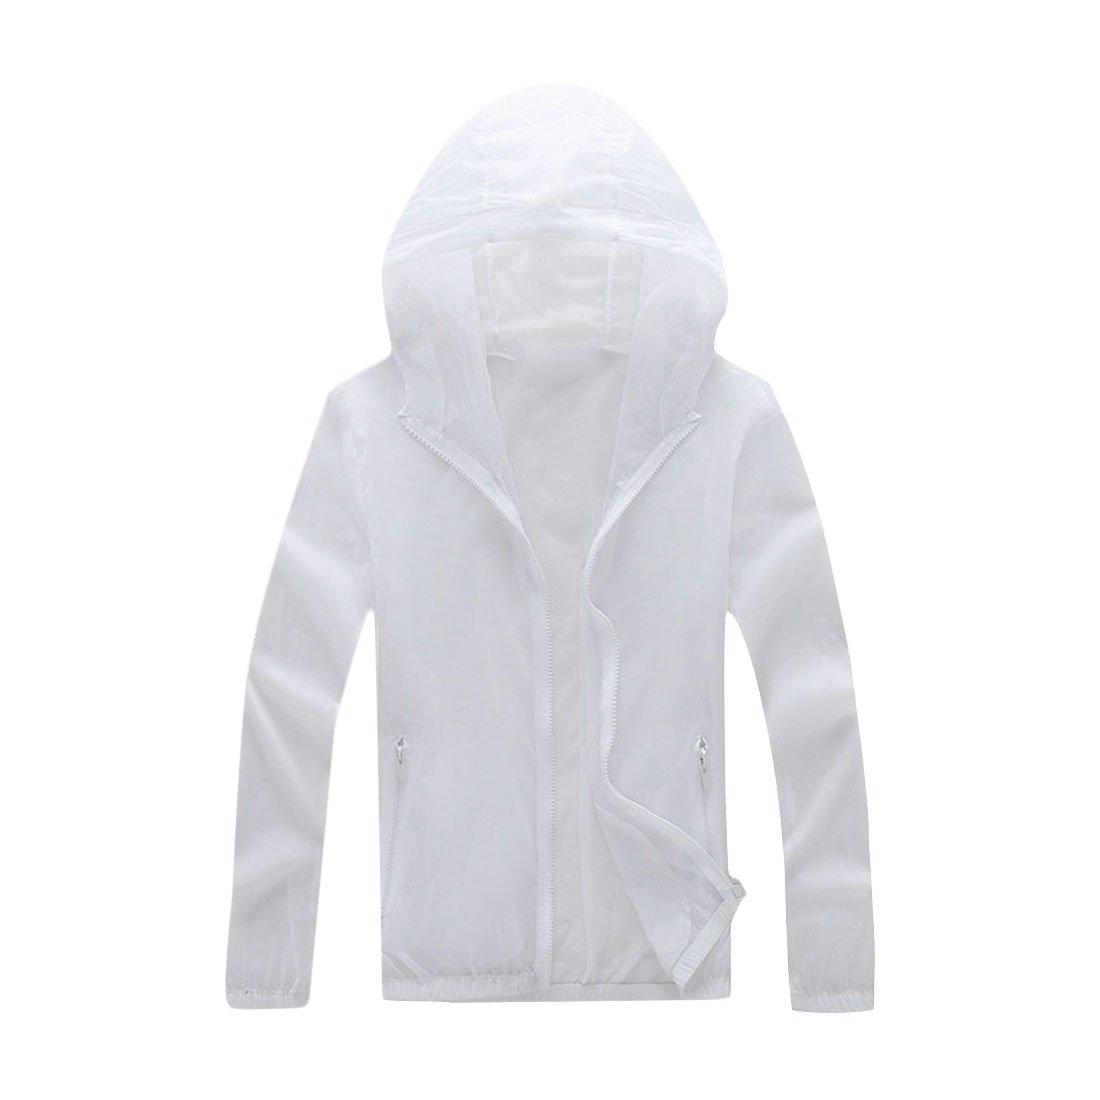 OTW Mens Summer Fashion Sunscreen Ventilation Zip up Hoodie Plus Size Jacket Coat White XS